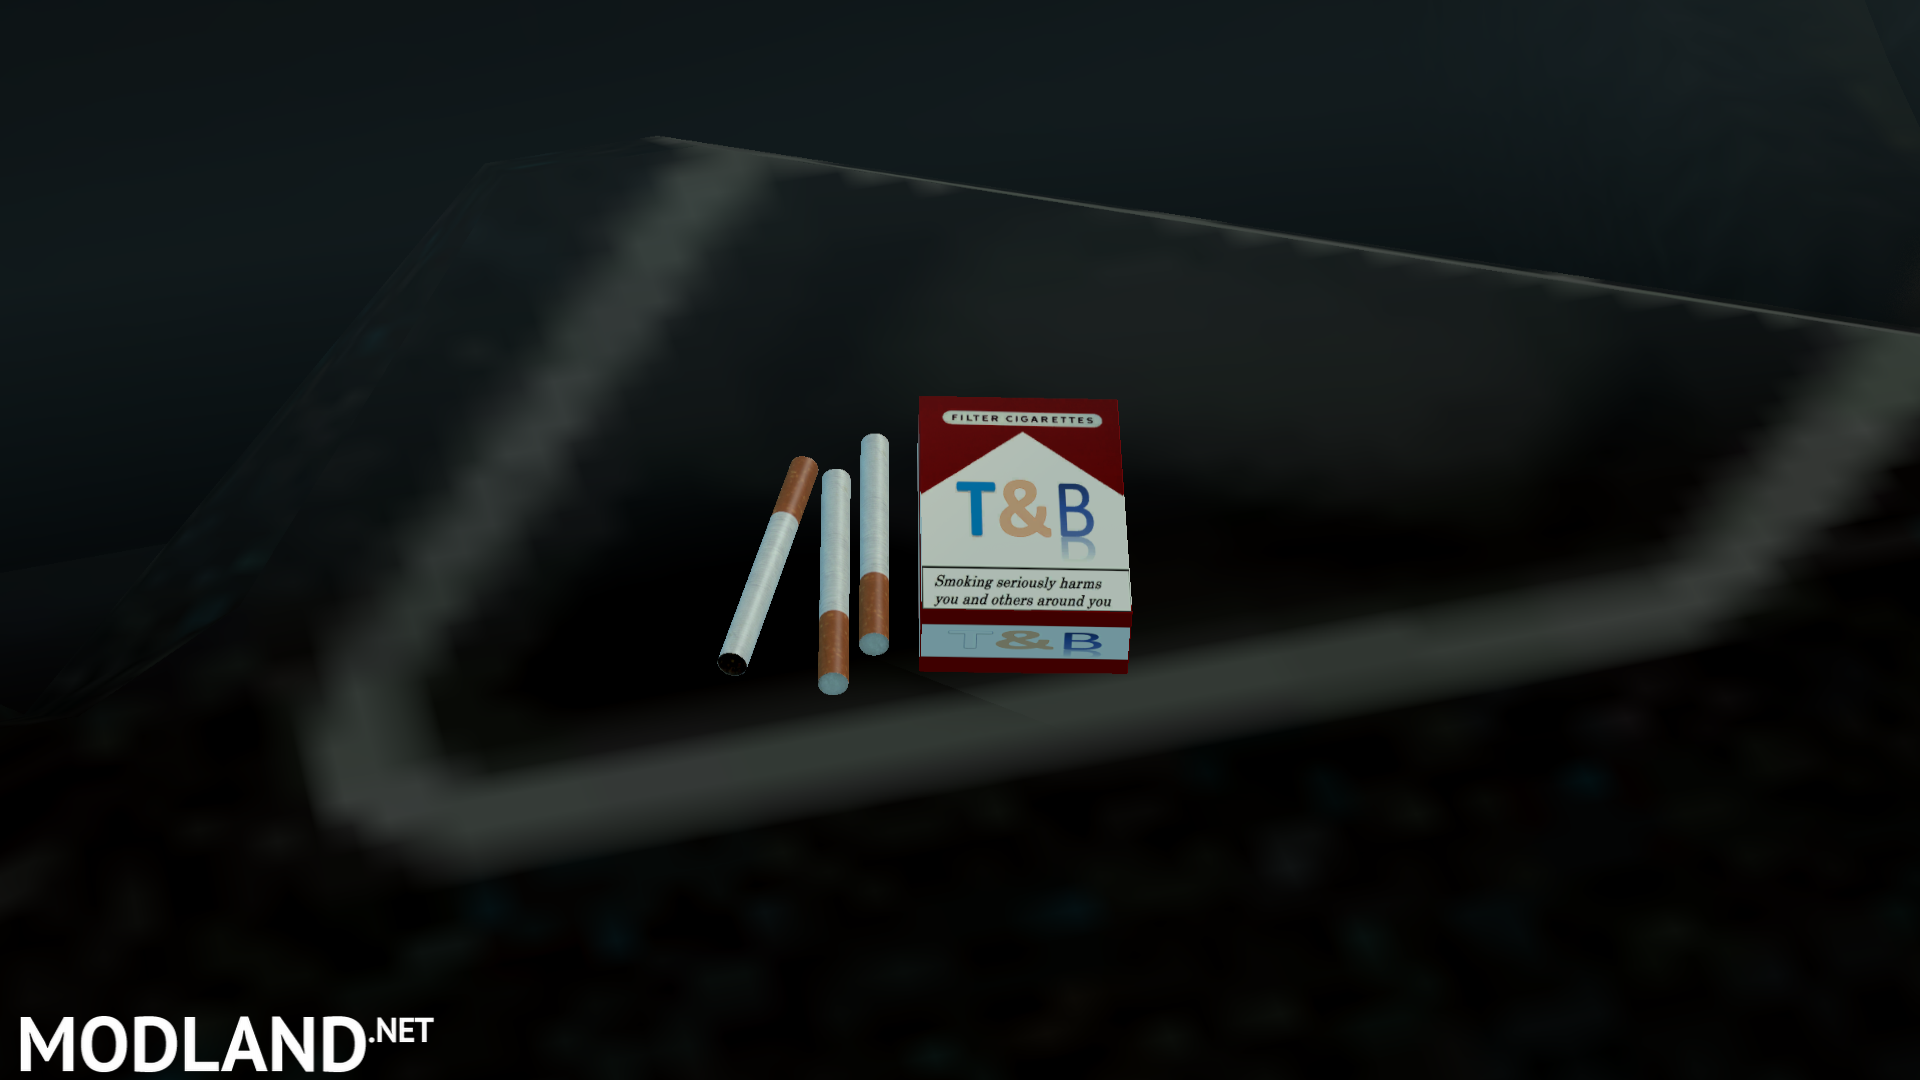 Cargo Trailer Accessories >> T&B Cigarettes - Interior Addon mod for ETS 2